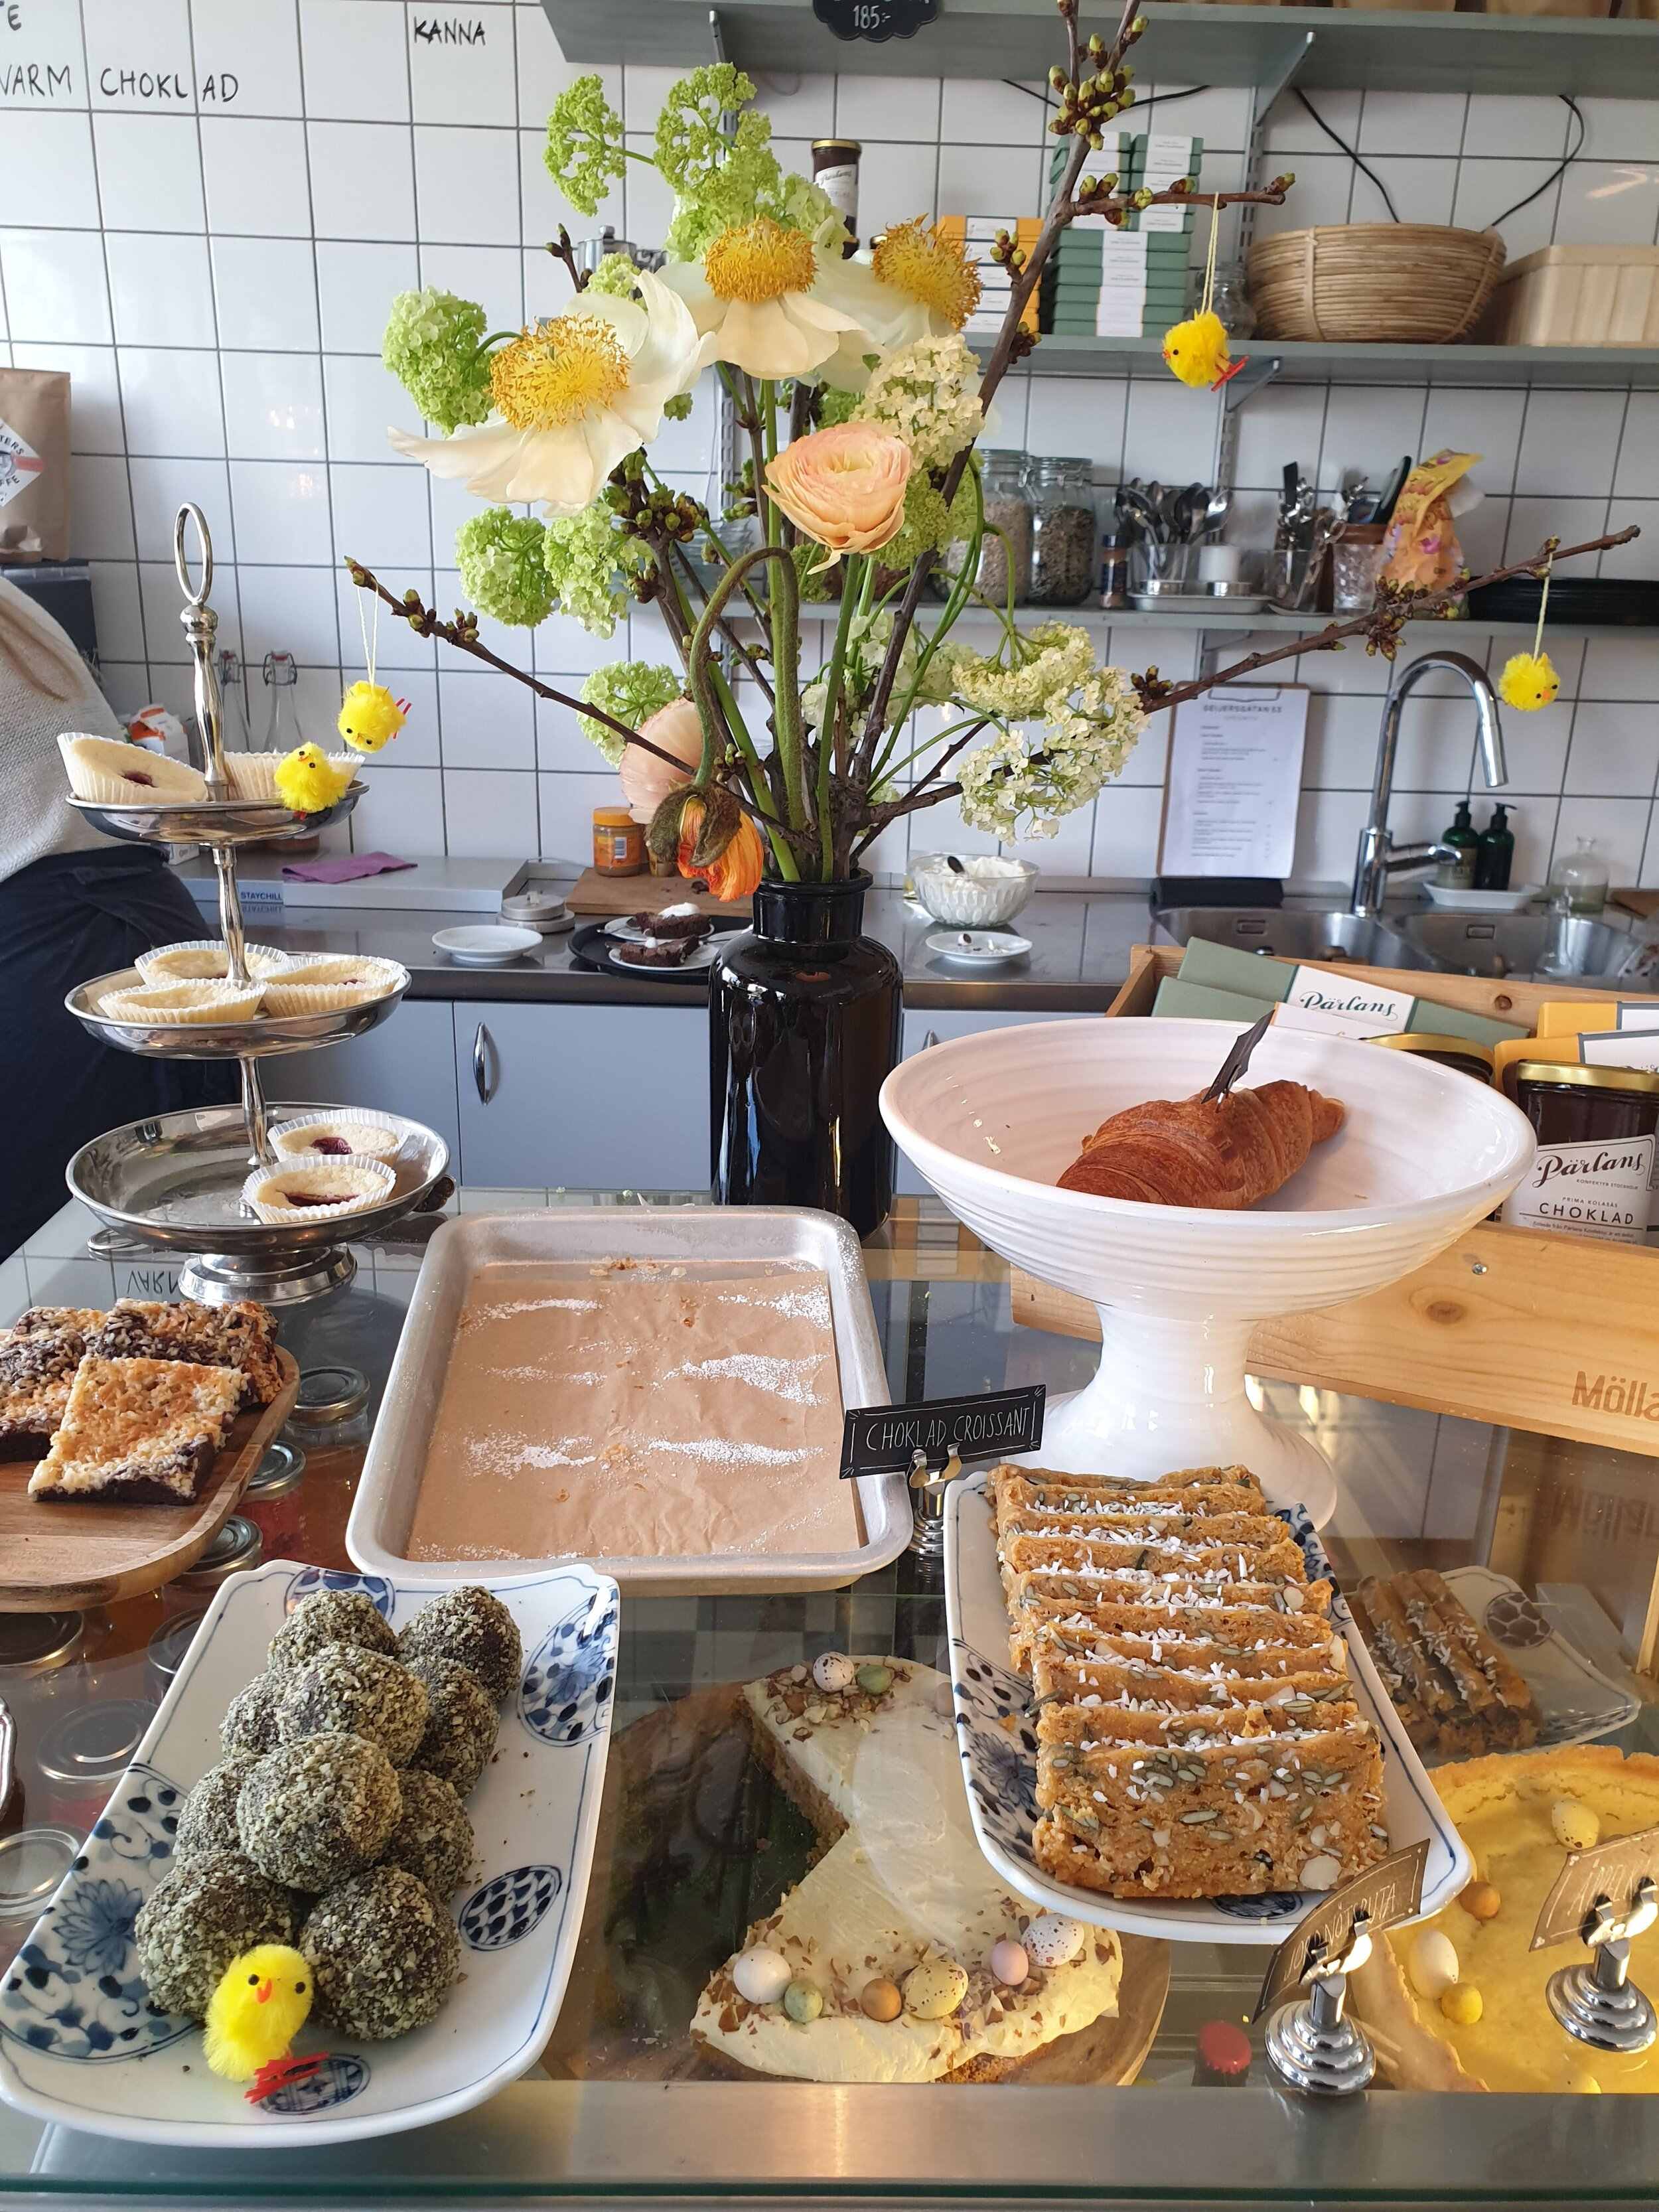 So much to choose from for your breakfast or brunch while in Malmö.